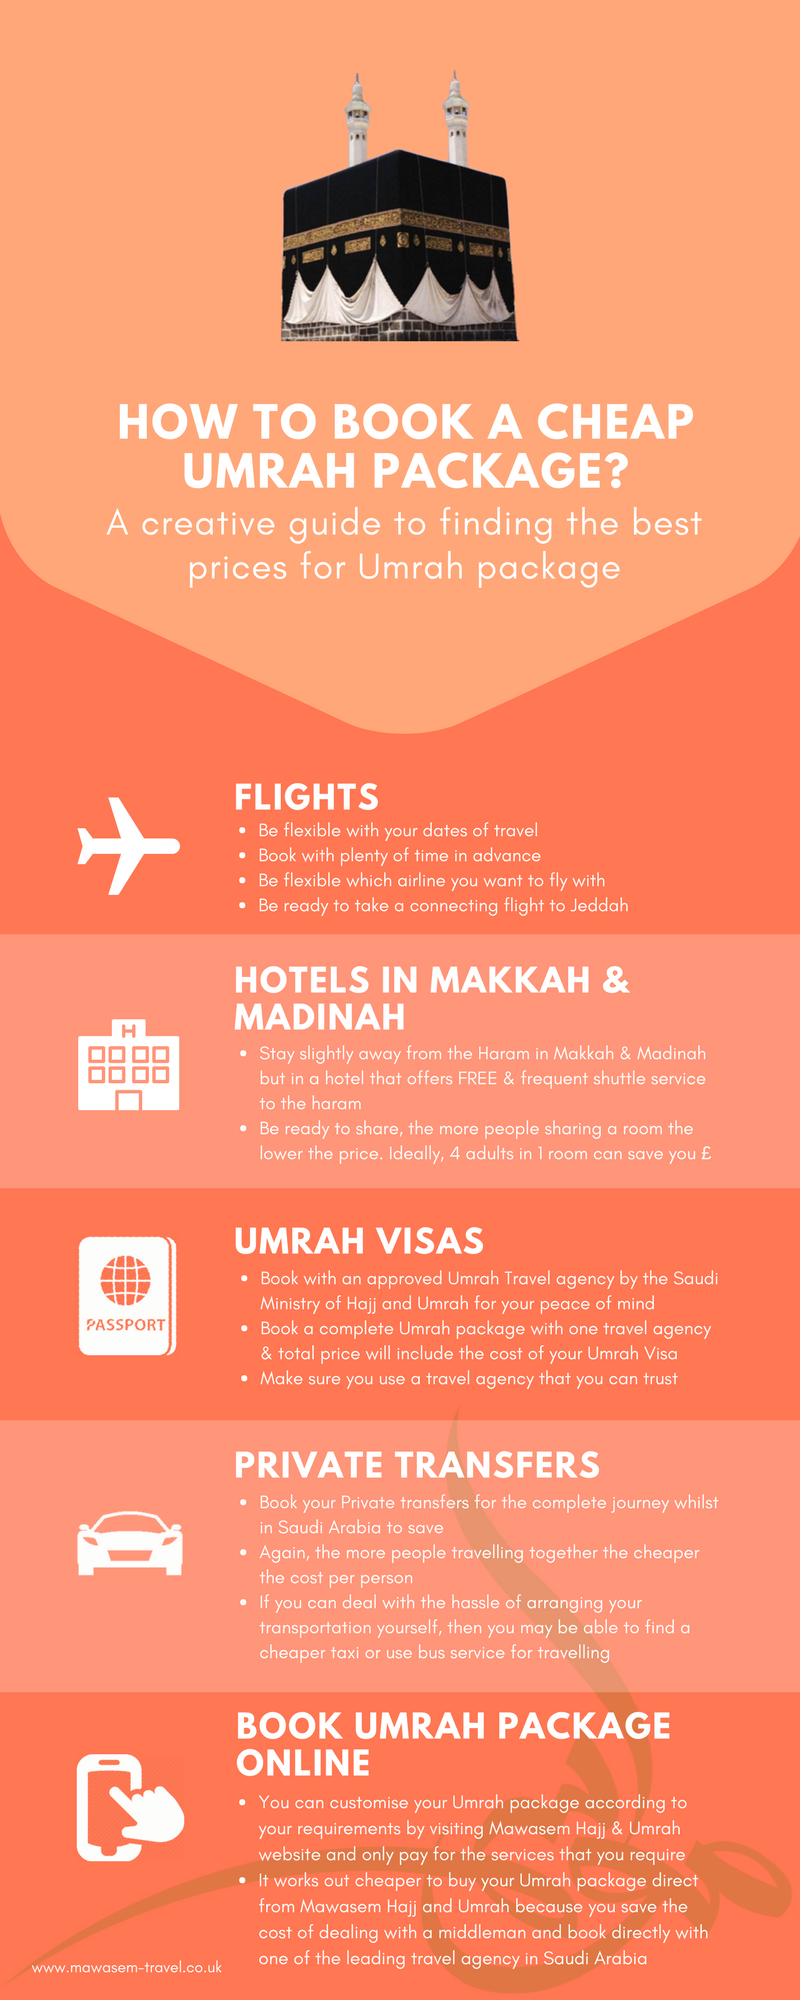 Have you ever wondered how can book you book a cheap Umrah